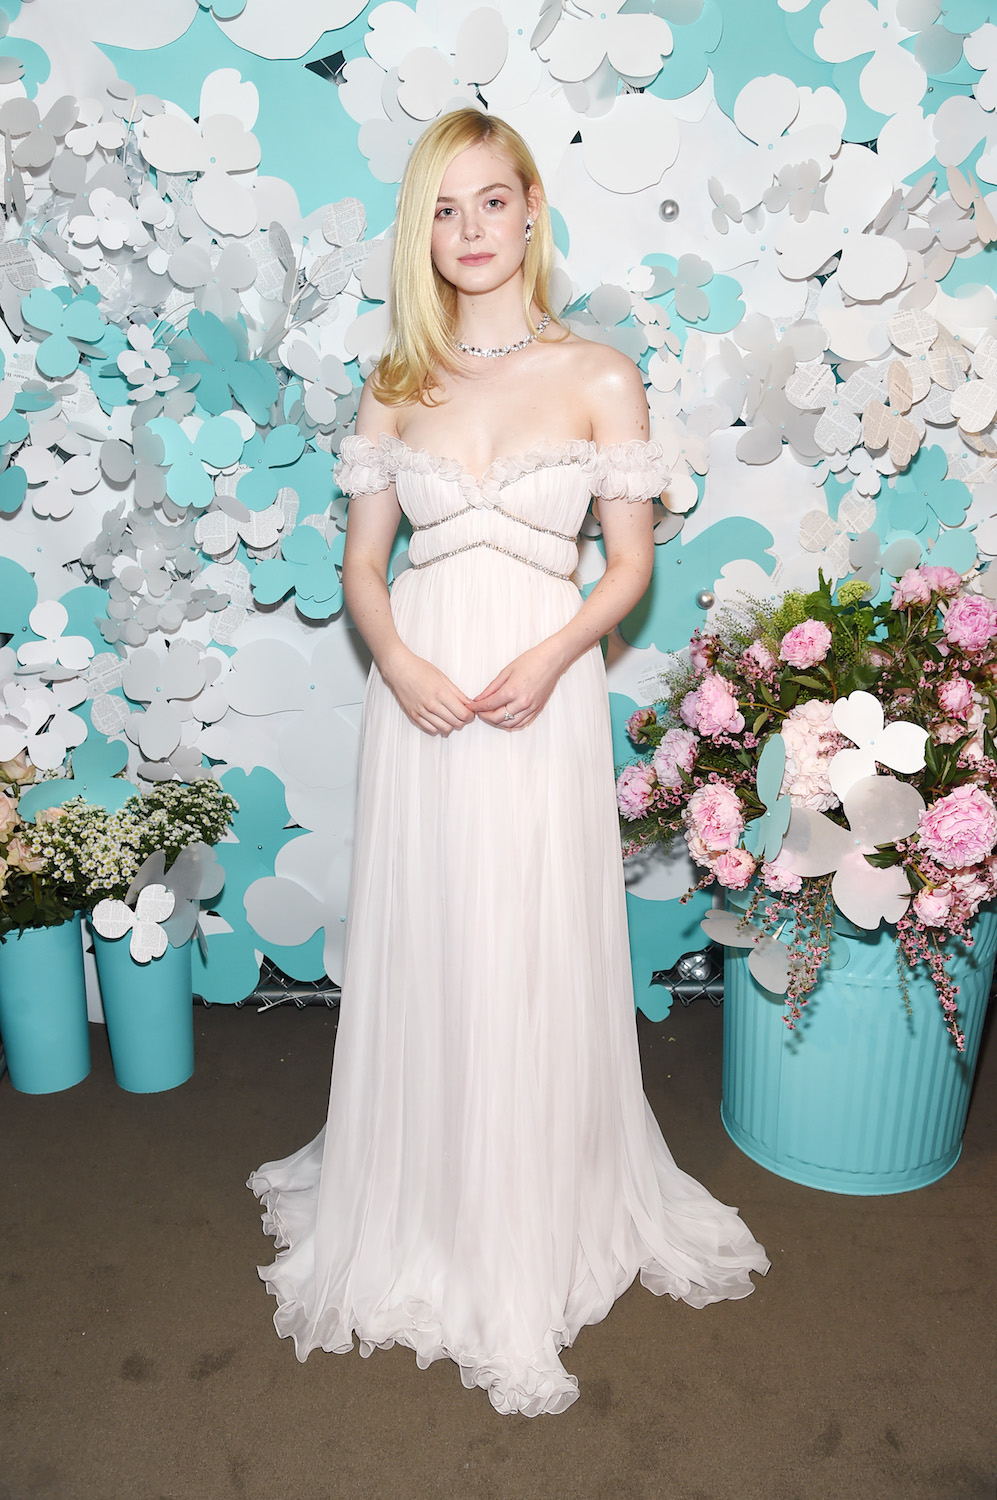 NEW YORK, NY - MAY 03: Elle Fanning attends the Tiffany & Co. Paper Flowers event and Believe In Dreams campaign launch on May 3, 2018 in New York City. (Photo by Jamie McCarthy/Getty Images for Tiffany & Co.)